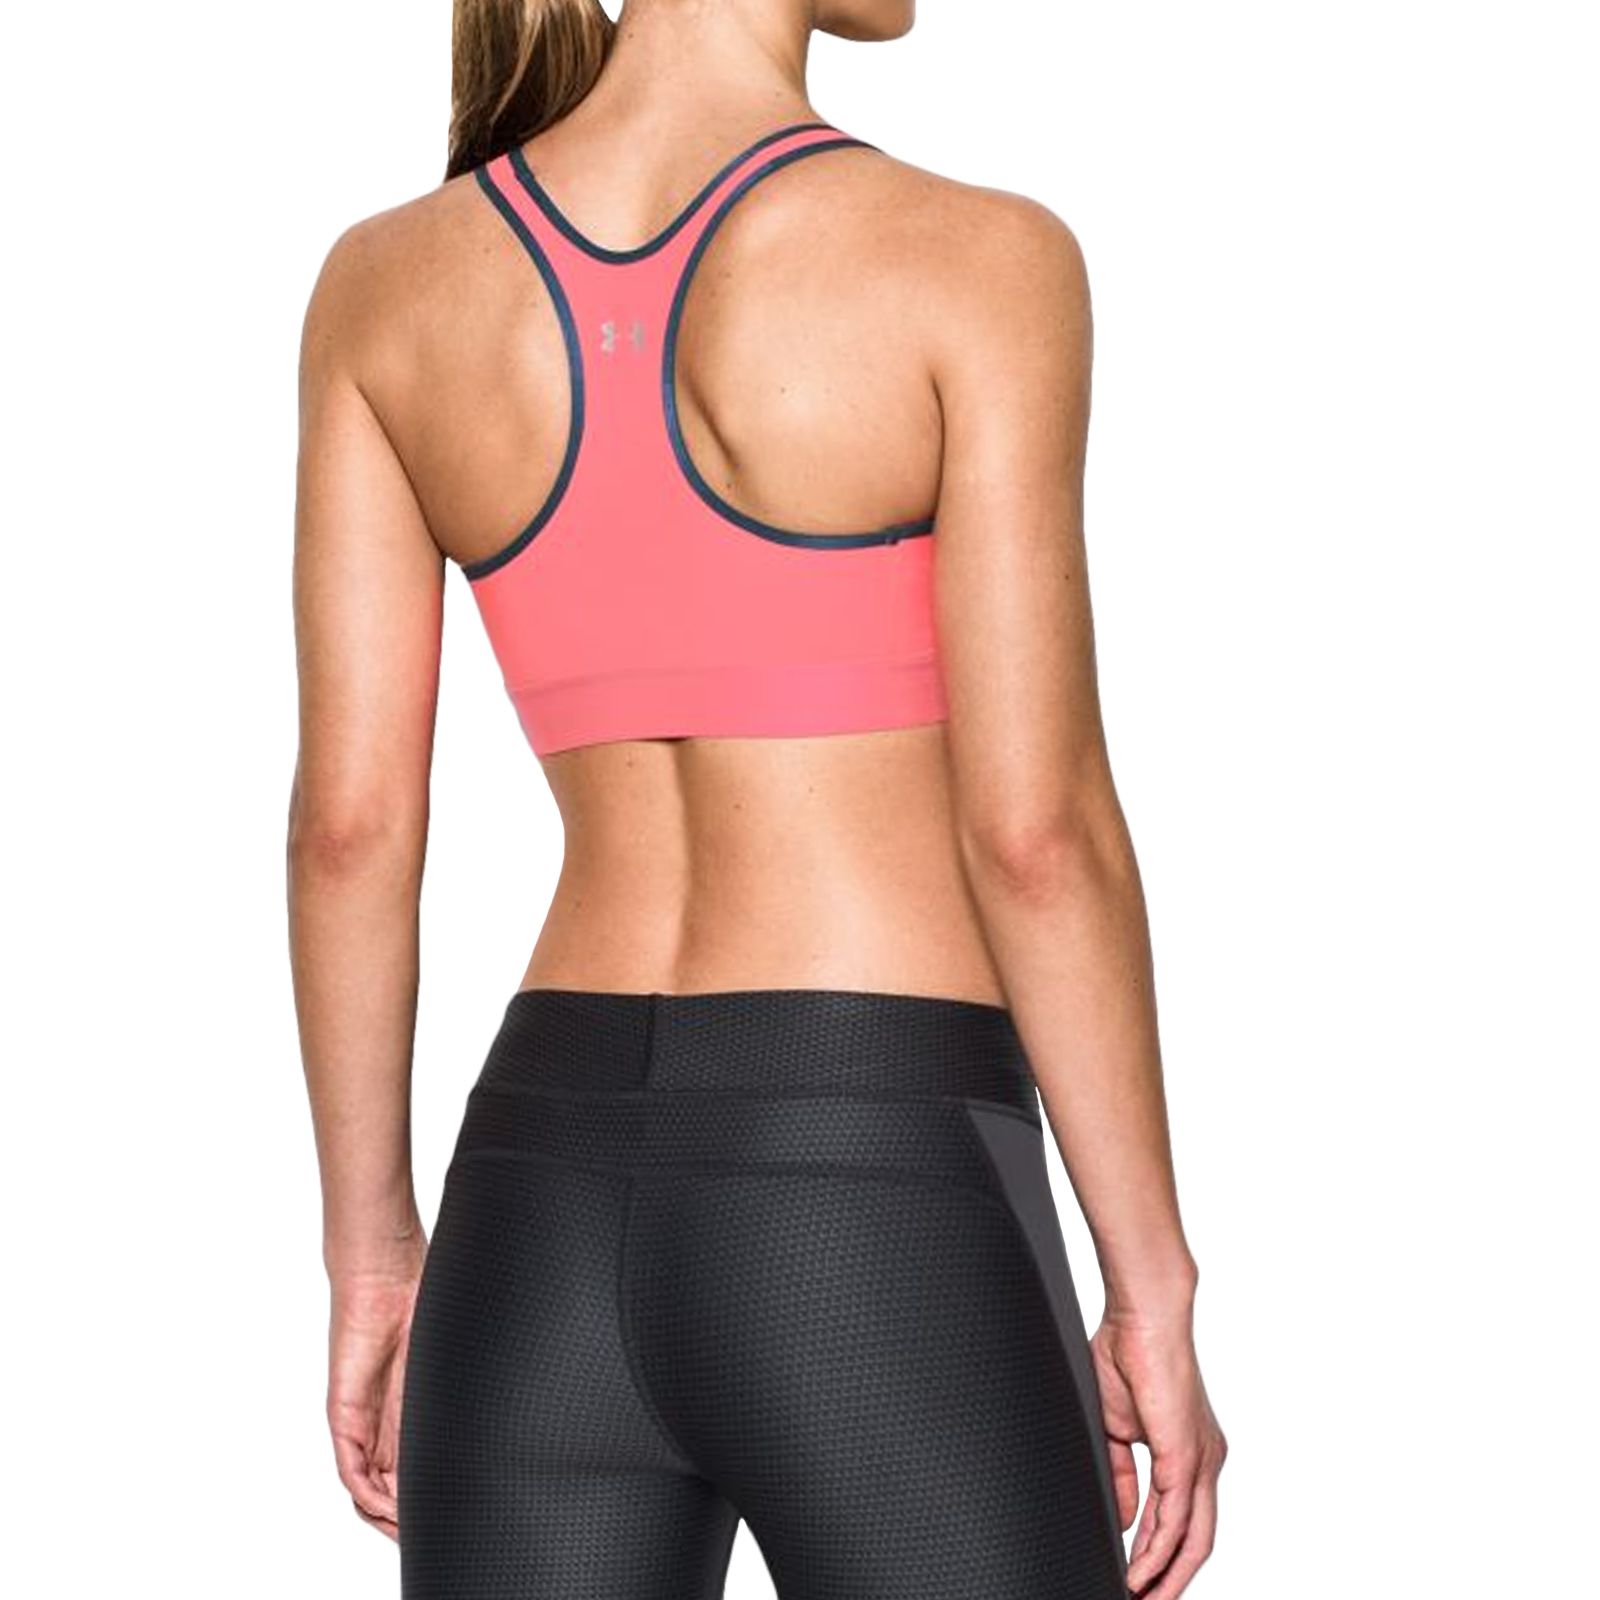 Under Armour UA Womens Mid Fit Sports Bra Gym Training ...